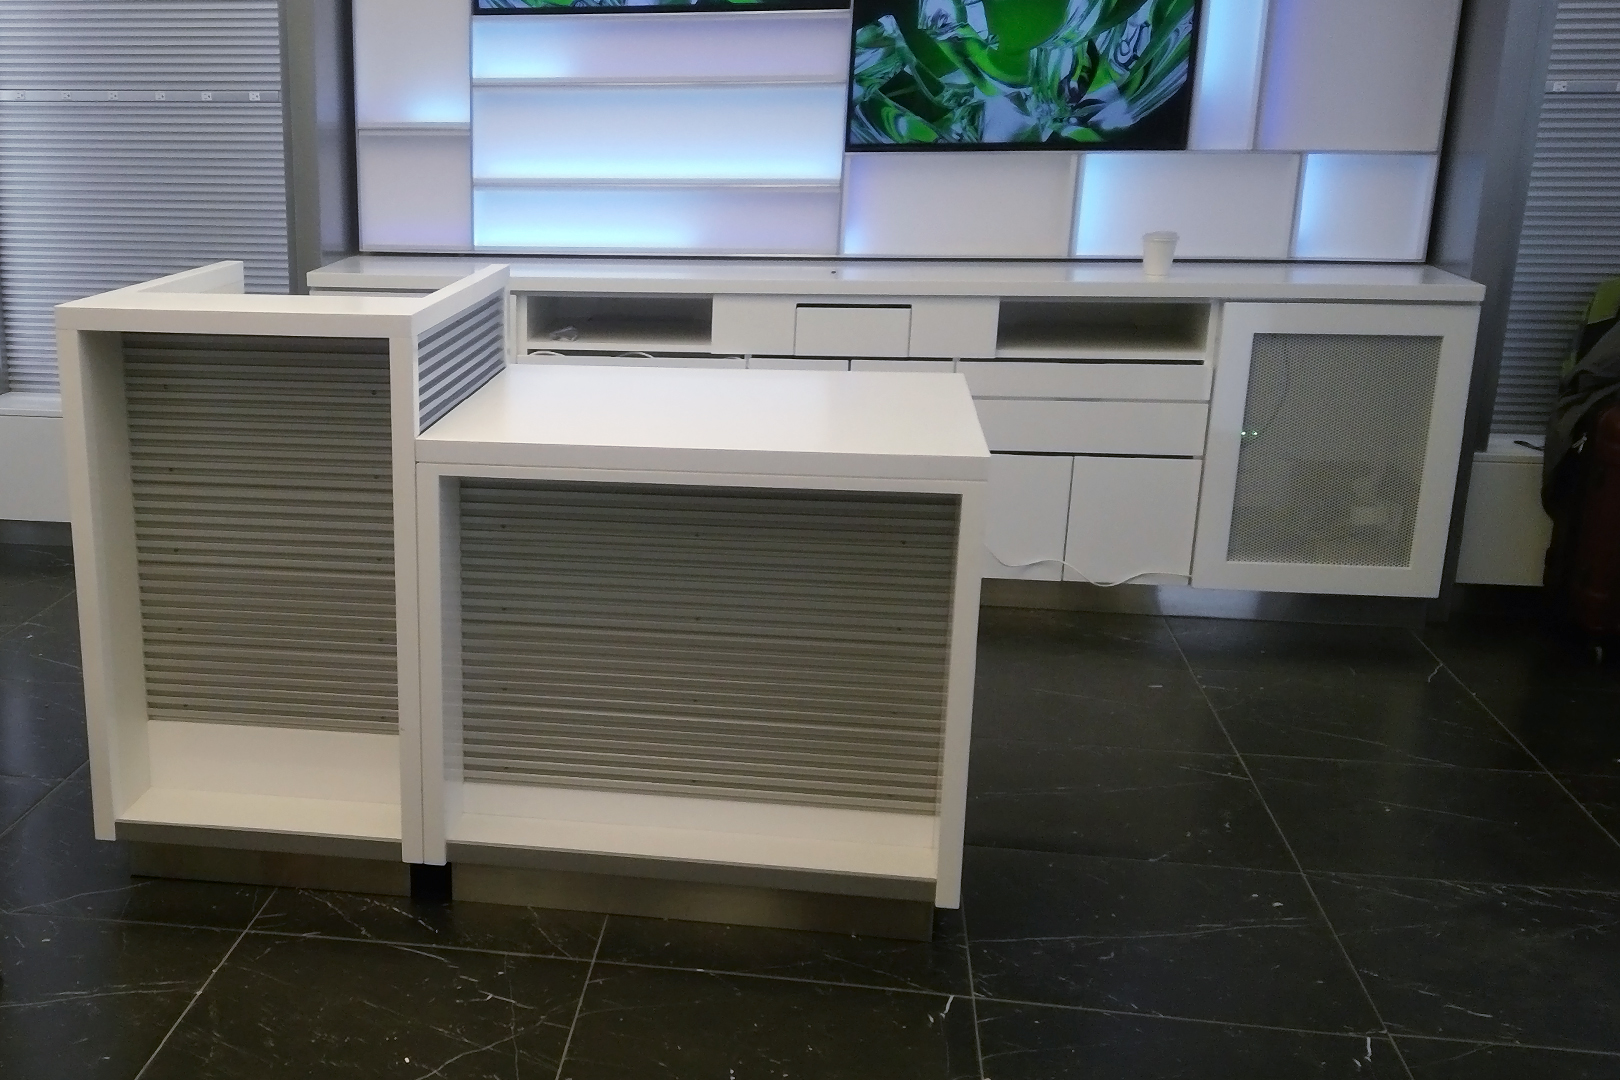 Tech on the go free standing slat wall fixture with backlit wall fixture in the background.